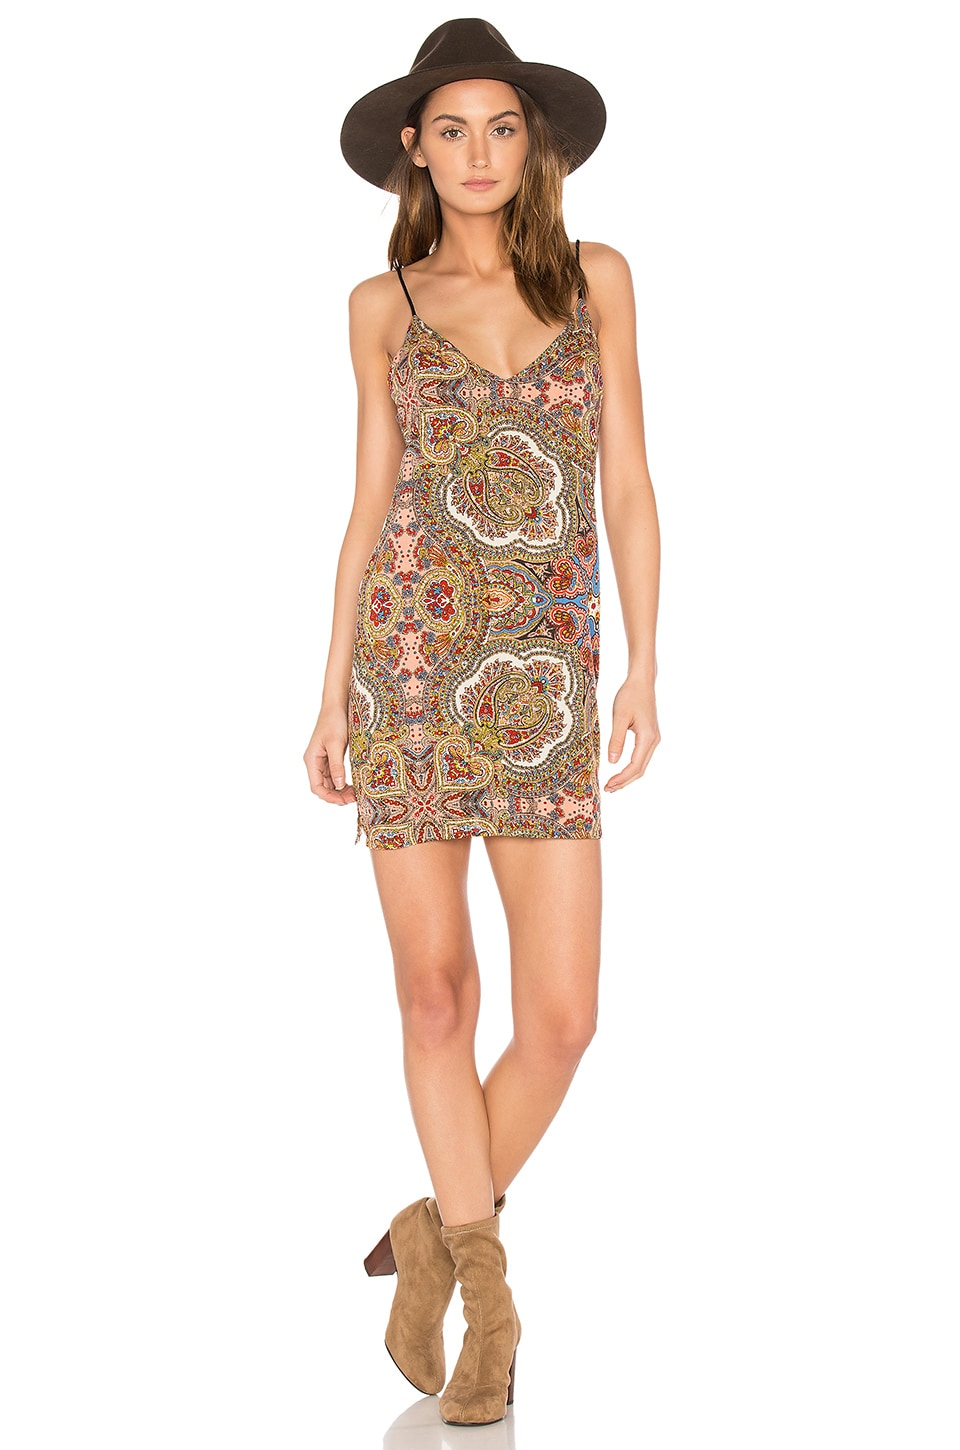 Cleobella Leanne Slip Dress in Rocker Paisley